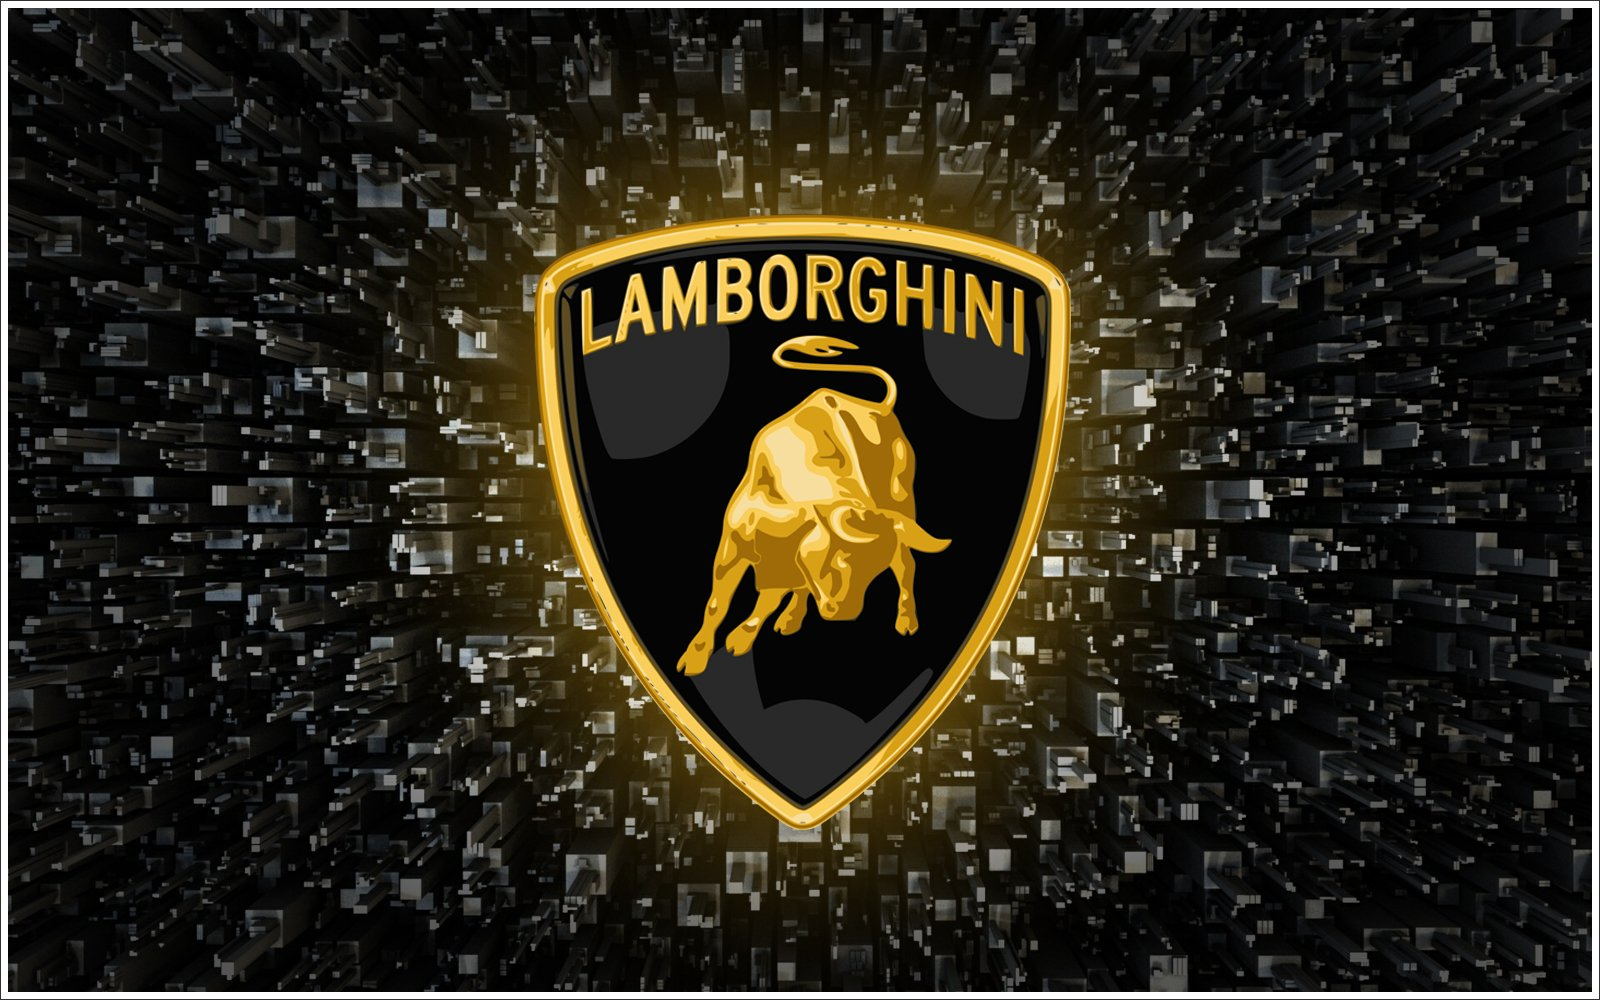 lamborghini logo meaning and history latest models world cars brands. Black Bedroom Furniture Sets. Home Design Ideas